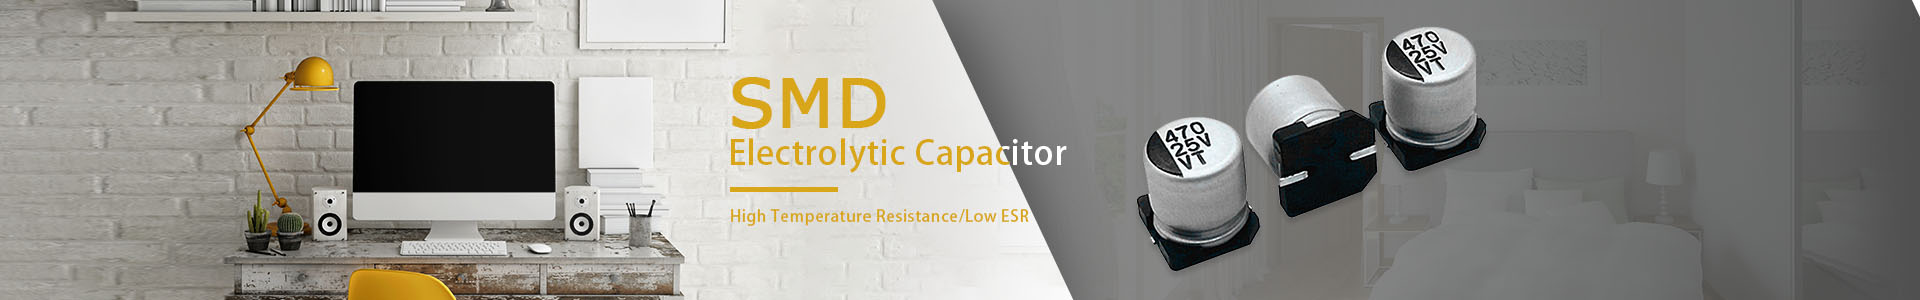 Good Quanlity CS Series Of Smd Aluminum Capacitors 25V 100UF 6.3*7.7 20% - SMD Capacitor